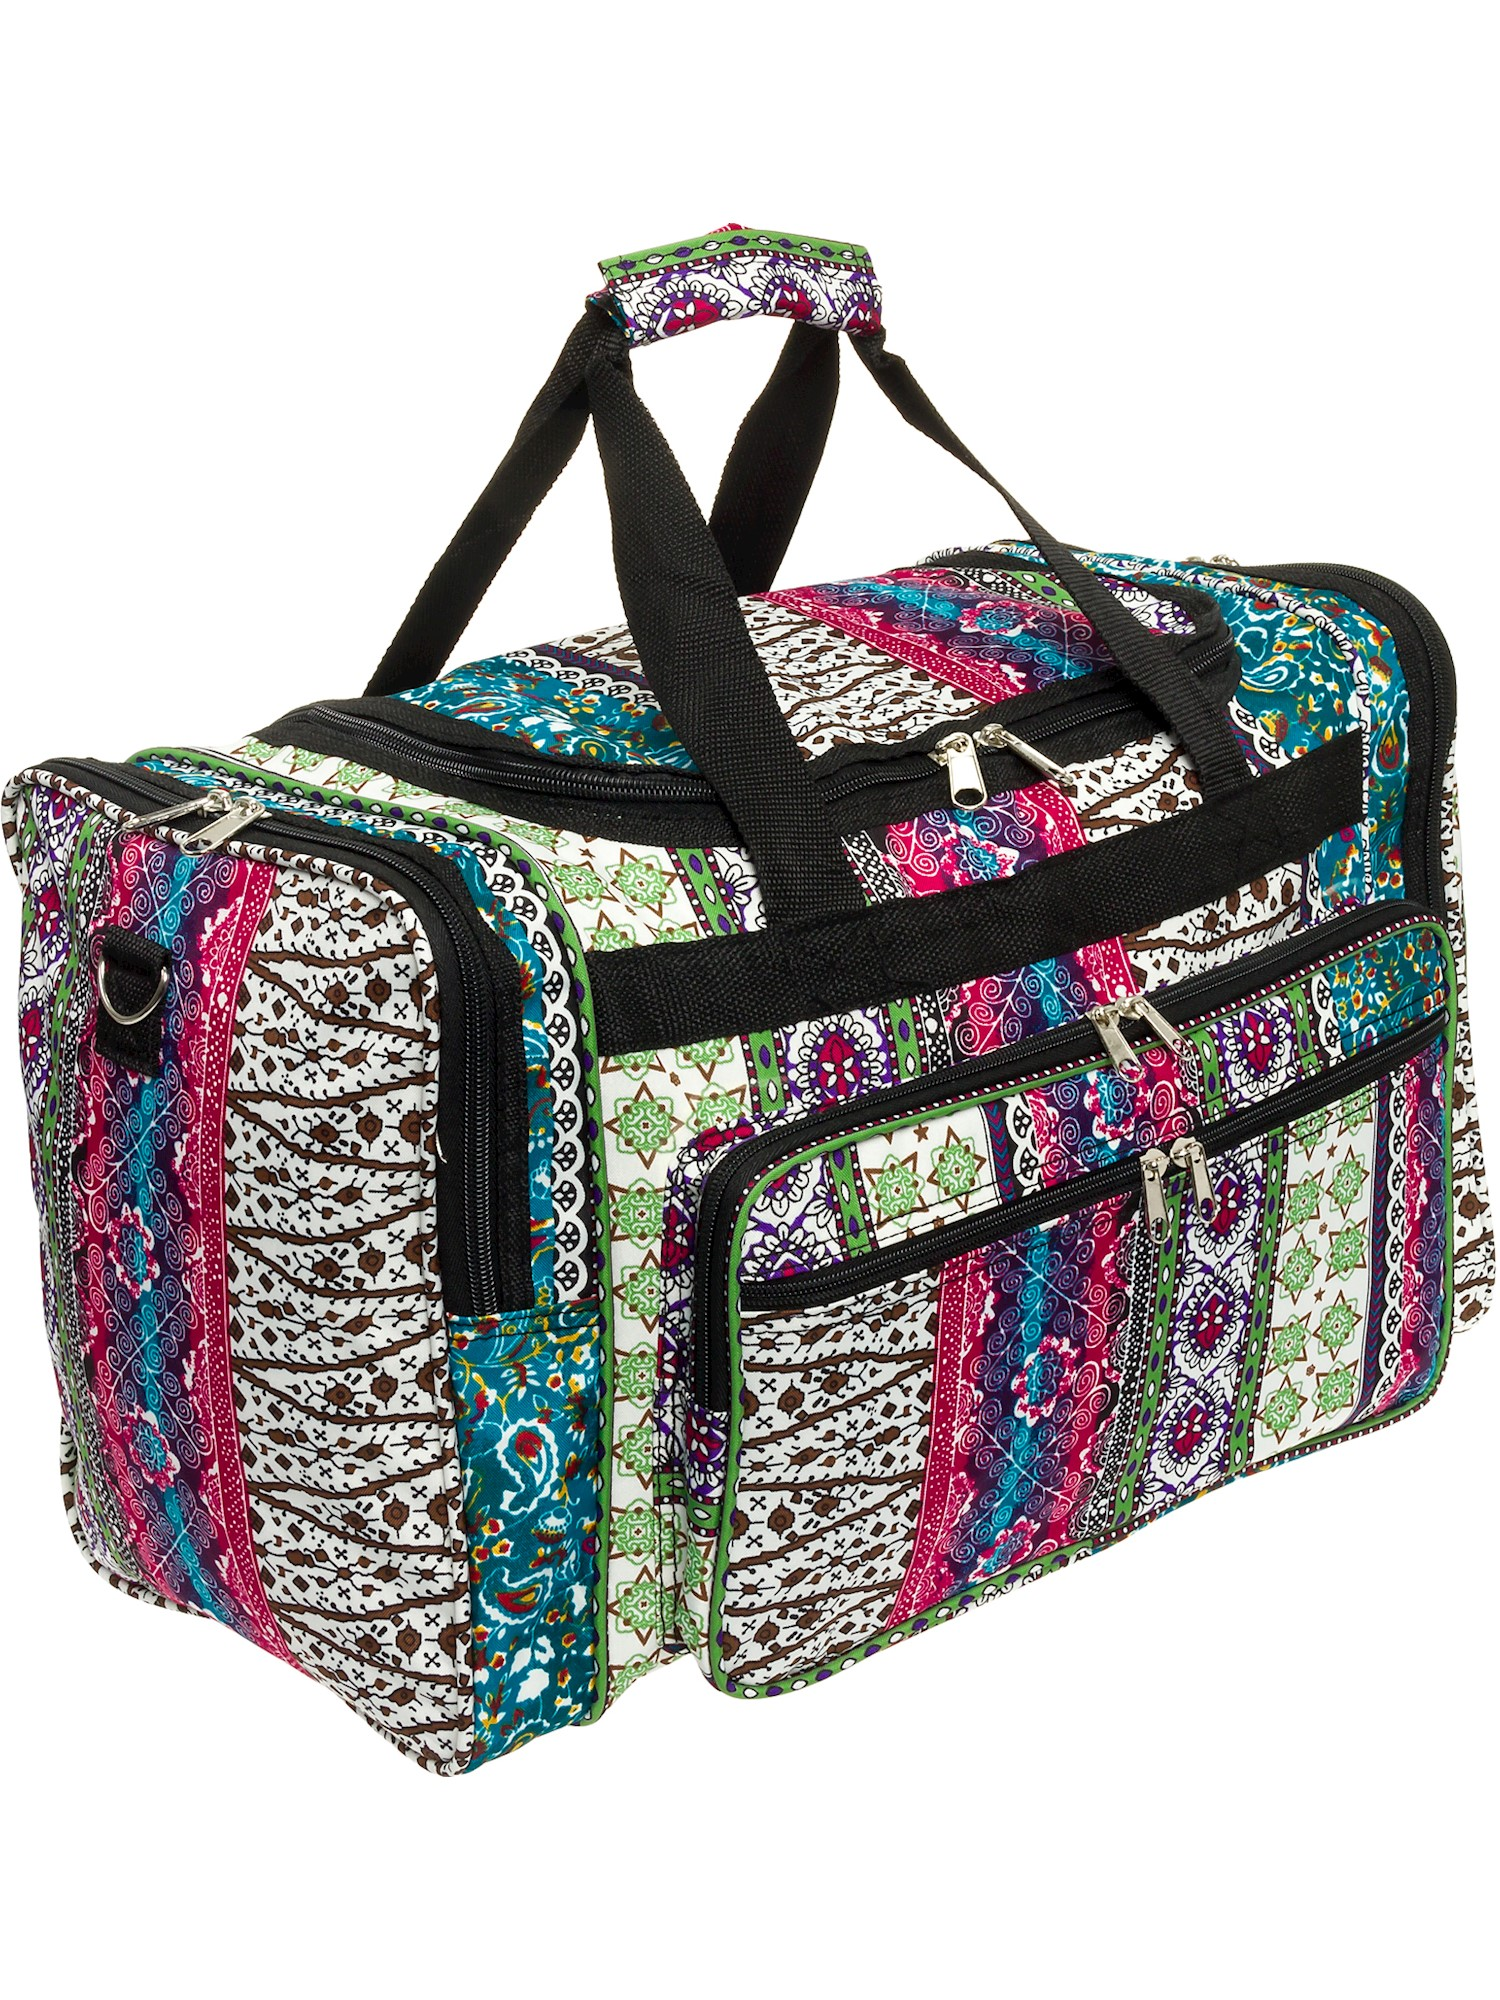 "Womens 19"" Boho Print Carry On Travel Tote Weekender Duffel Bag w/ Black Trim"